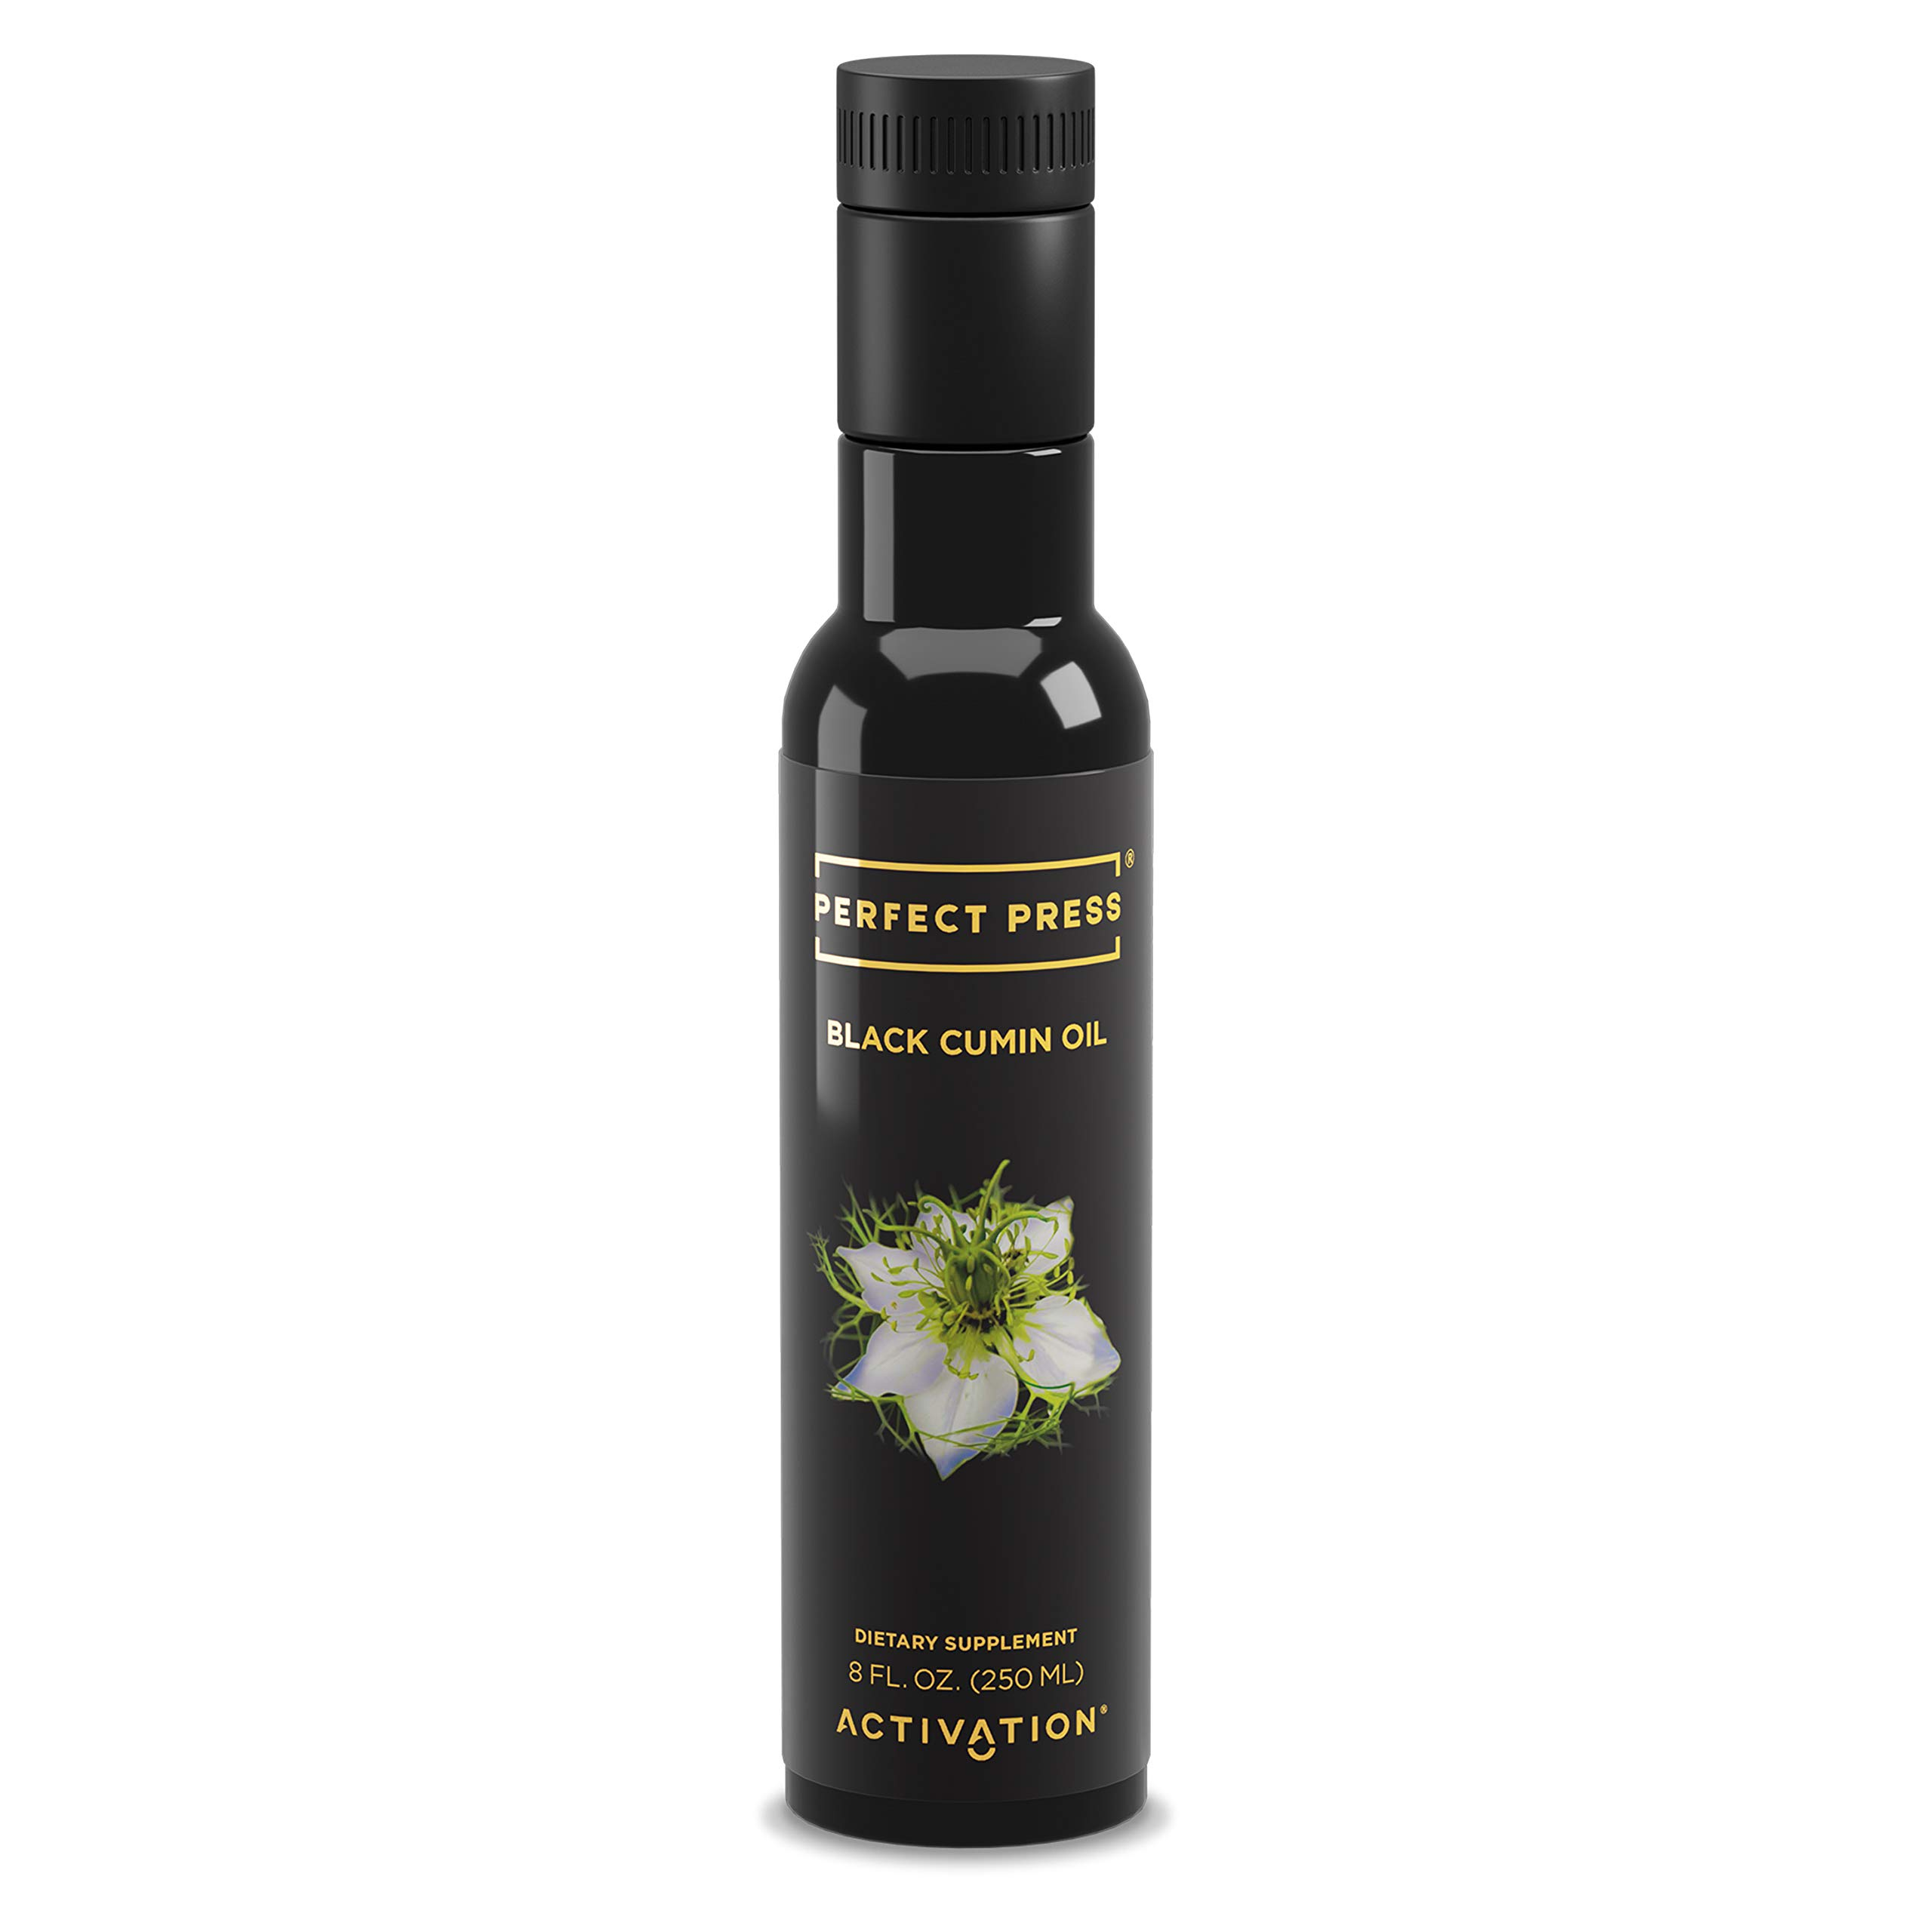 Activation Products, Perfect Press Black Cumin Seed Oil - Vegan, Organic and Gluten Free Pure Nigella Sativa - Digestive Support, Immune System Booster, Loaded with Vitamins B1 B2 B3, 250ml